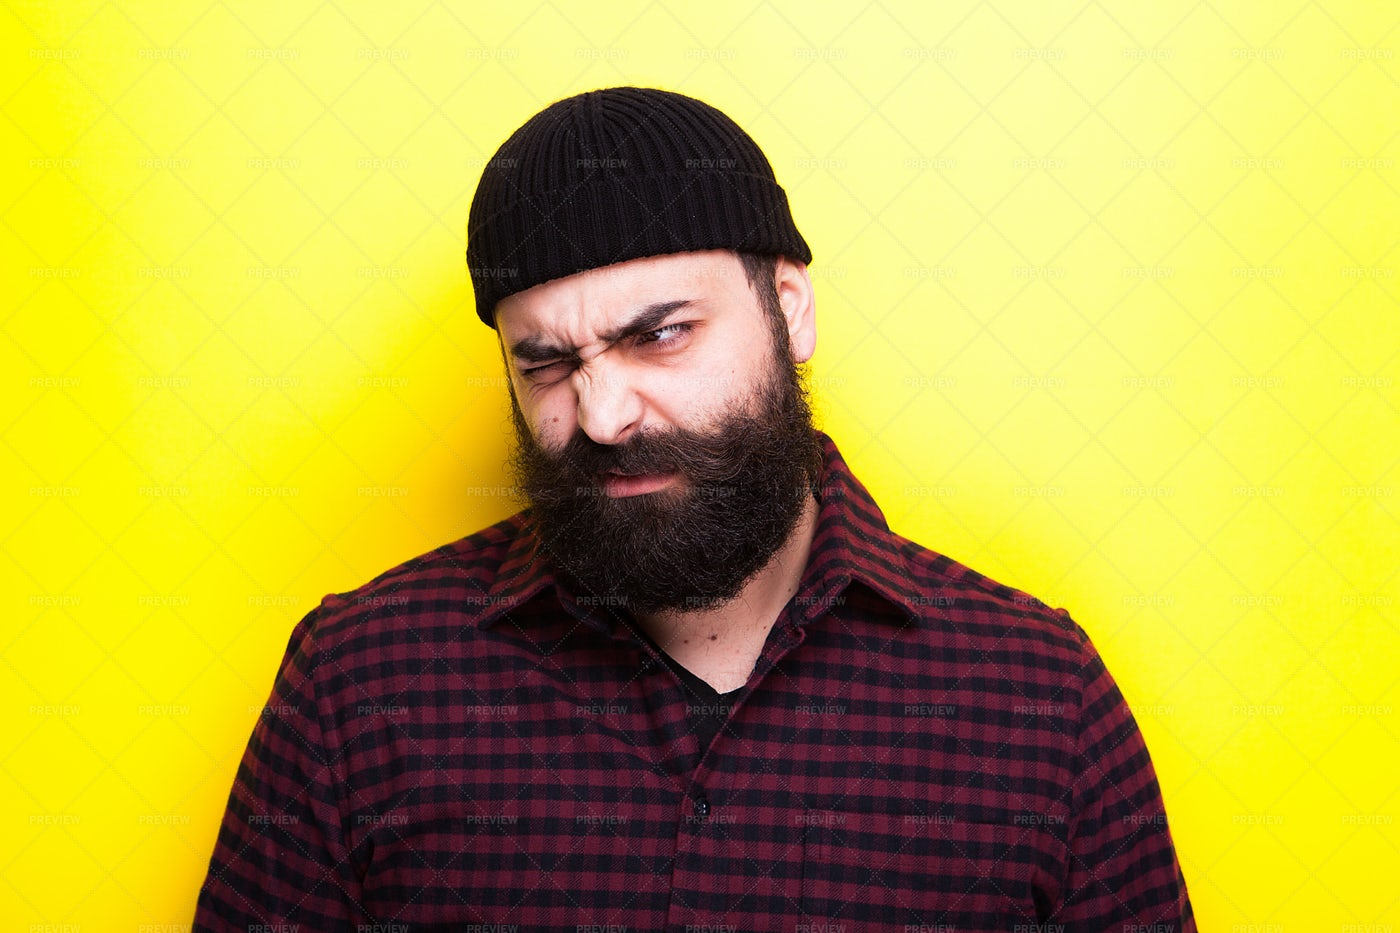 Bearded Man Making Silly Faces: Stock Photos